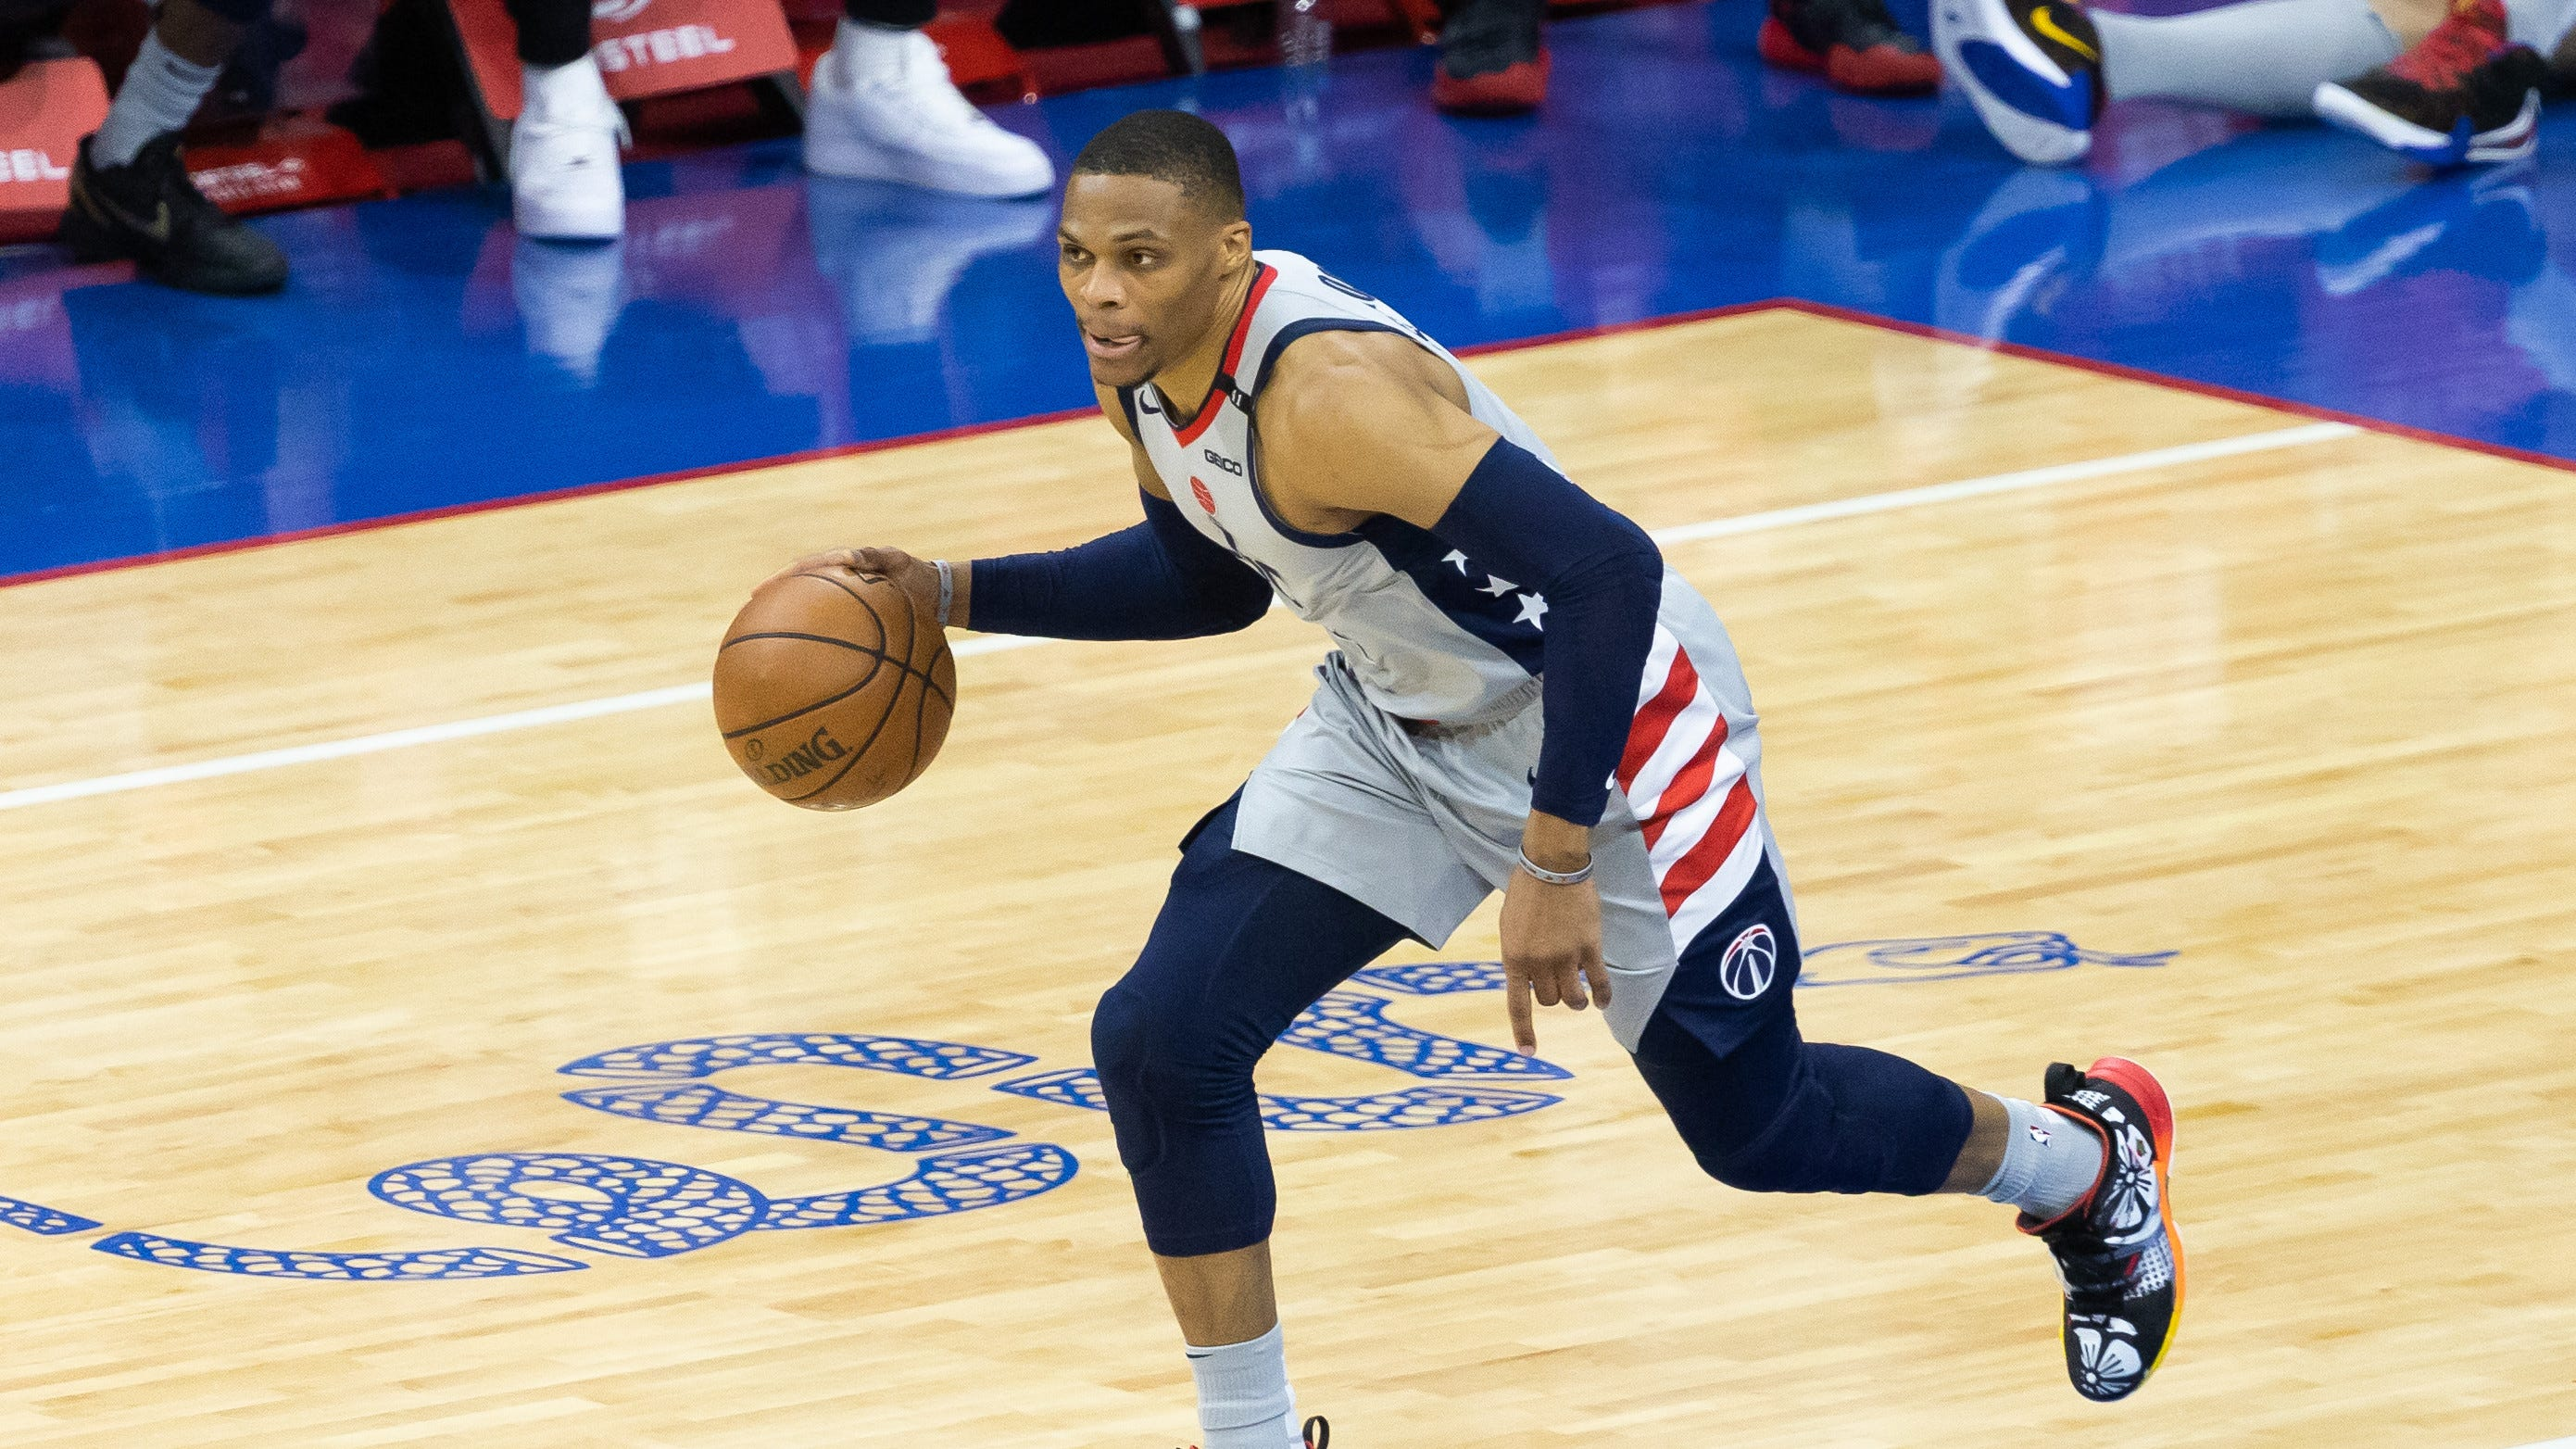 Opinion: Why Russell Westbrook will be able to coexist with Lakers' LeBron James and Anthony Davis